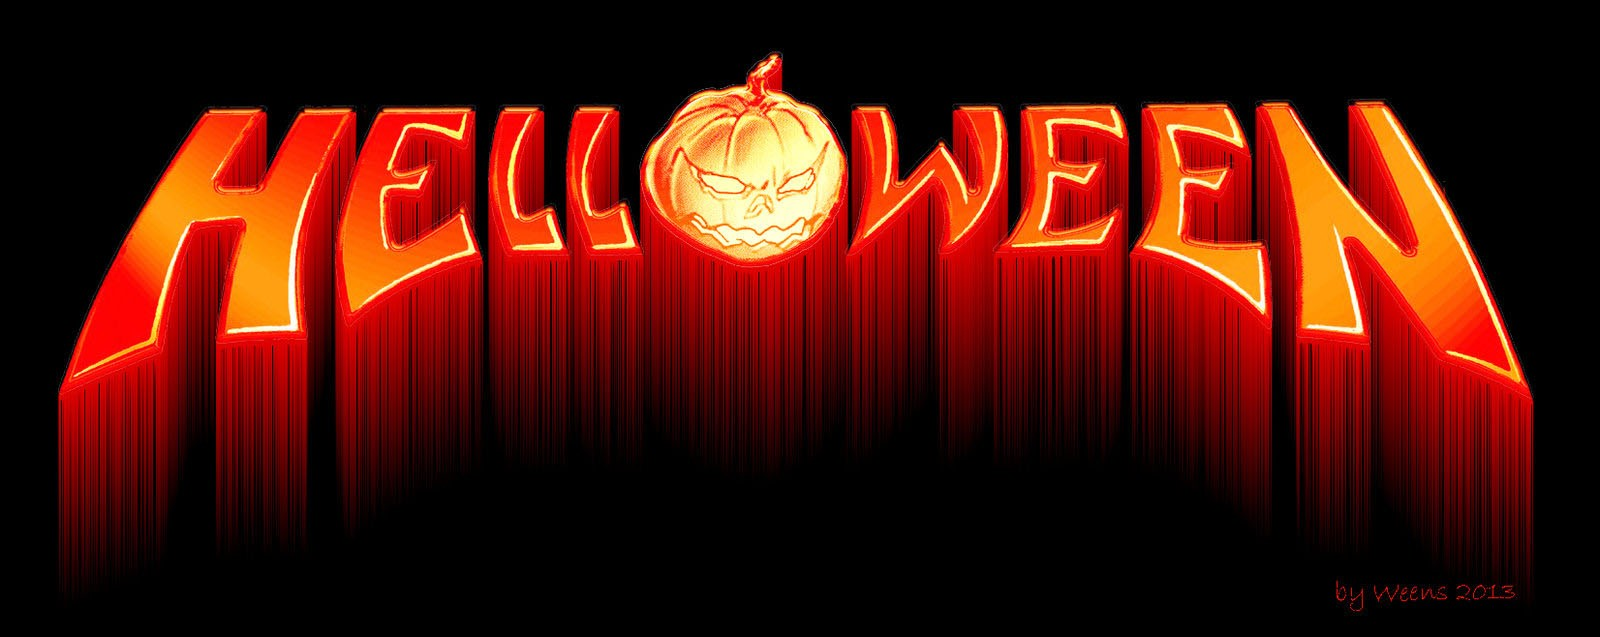 Car Wallpaper >> Helloween HD wallpapers free Download